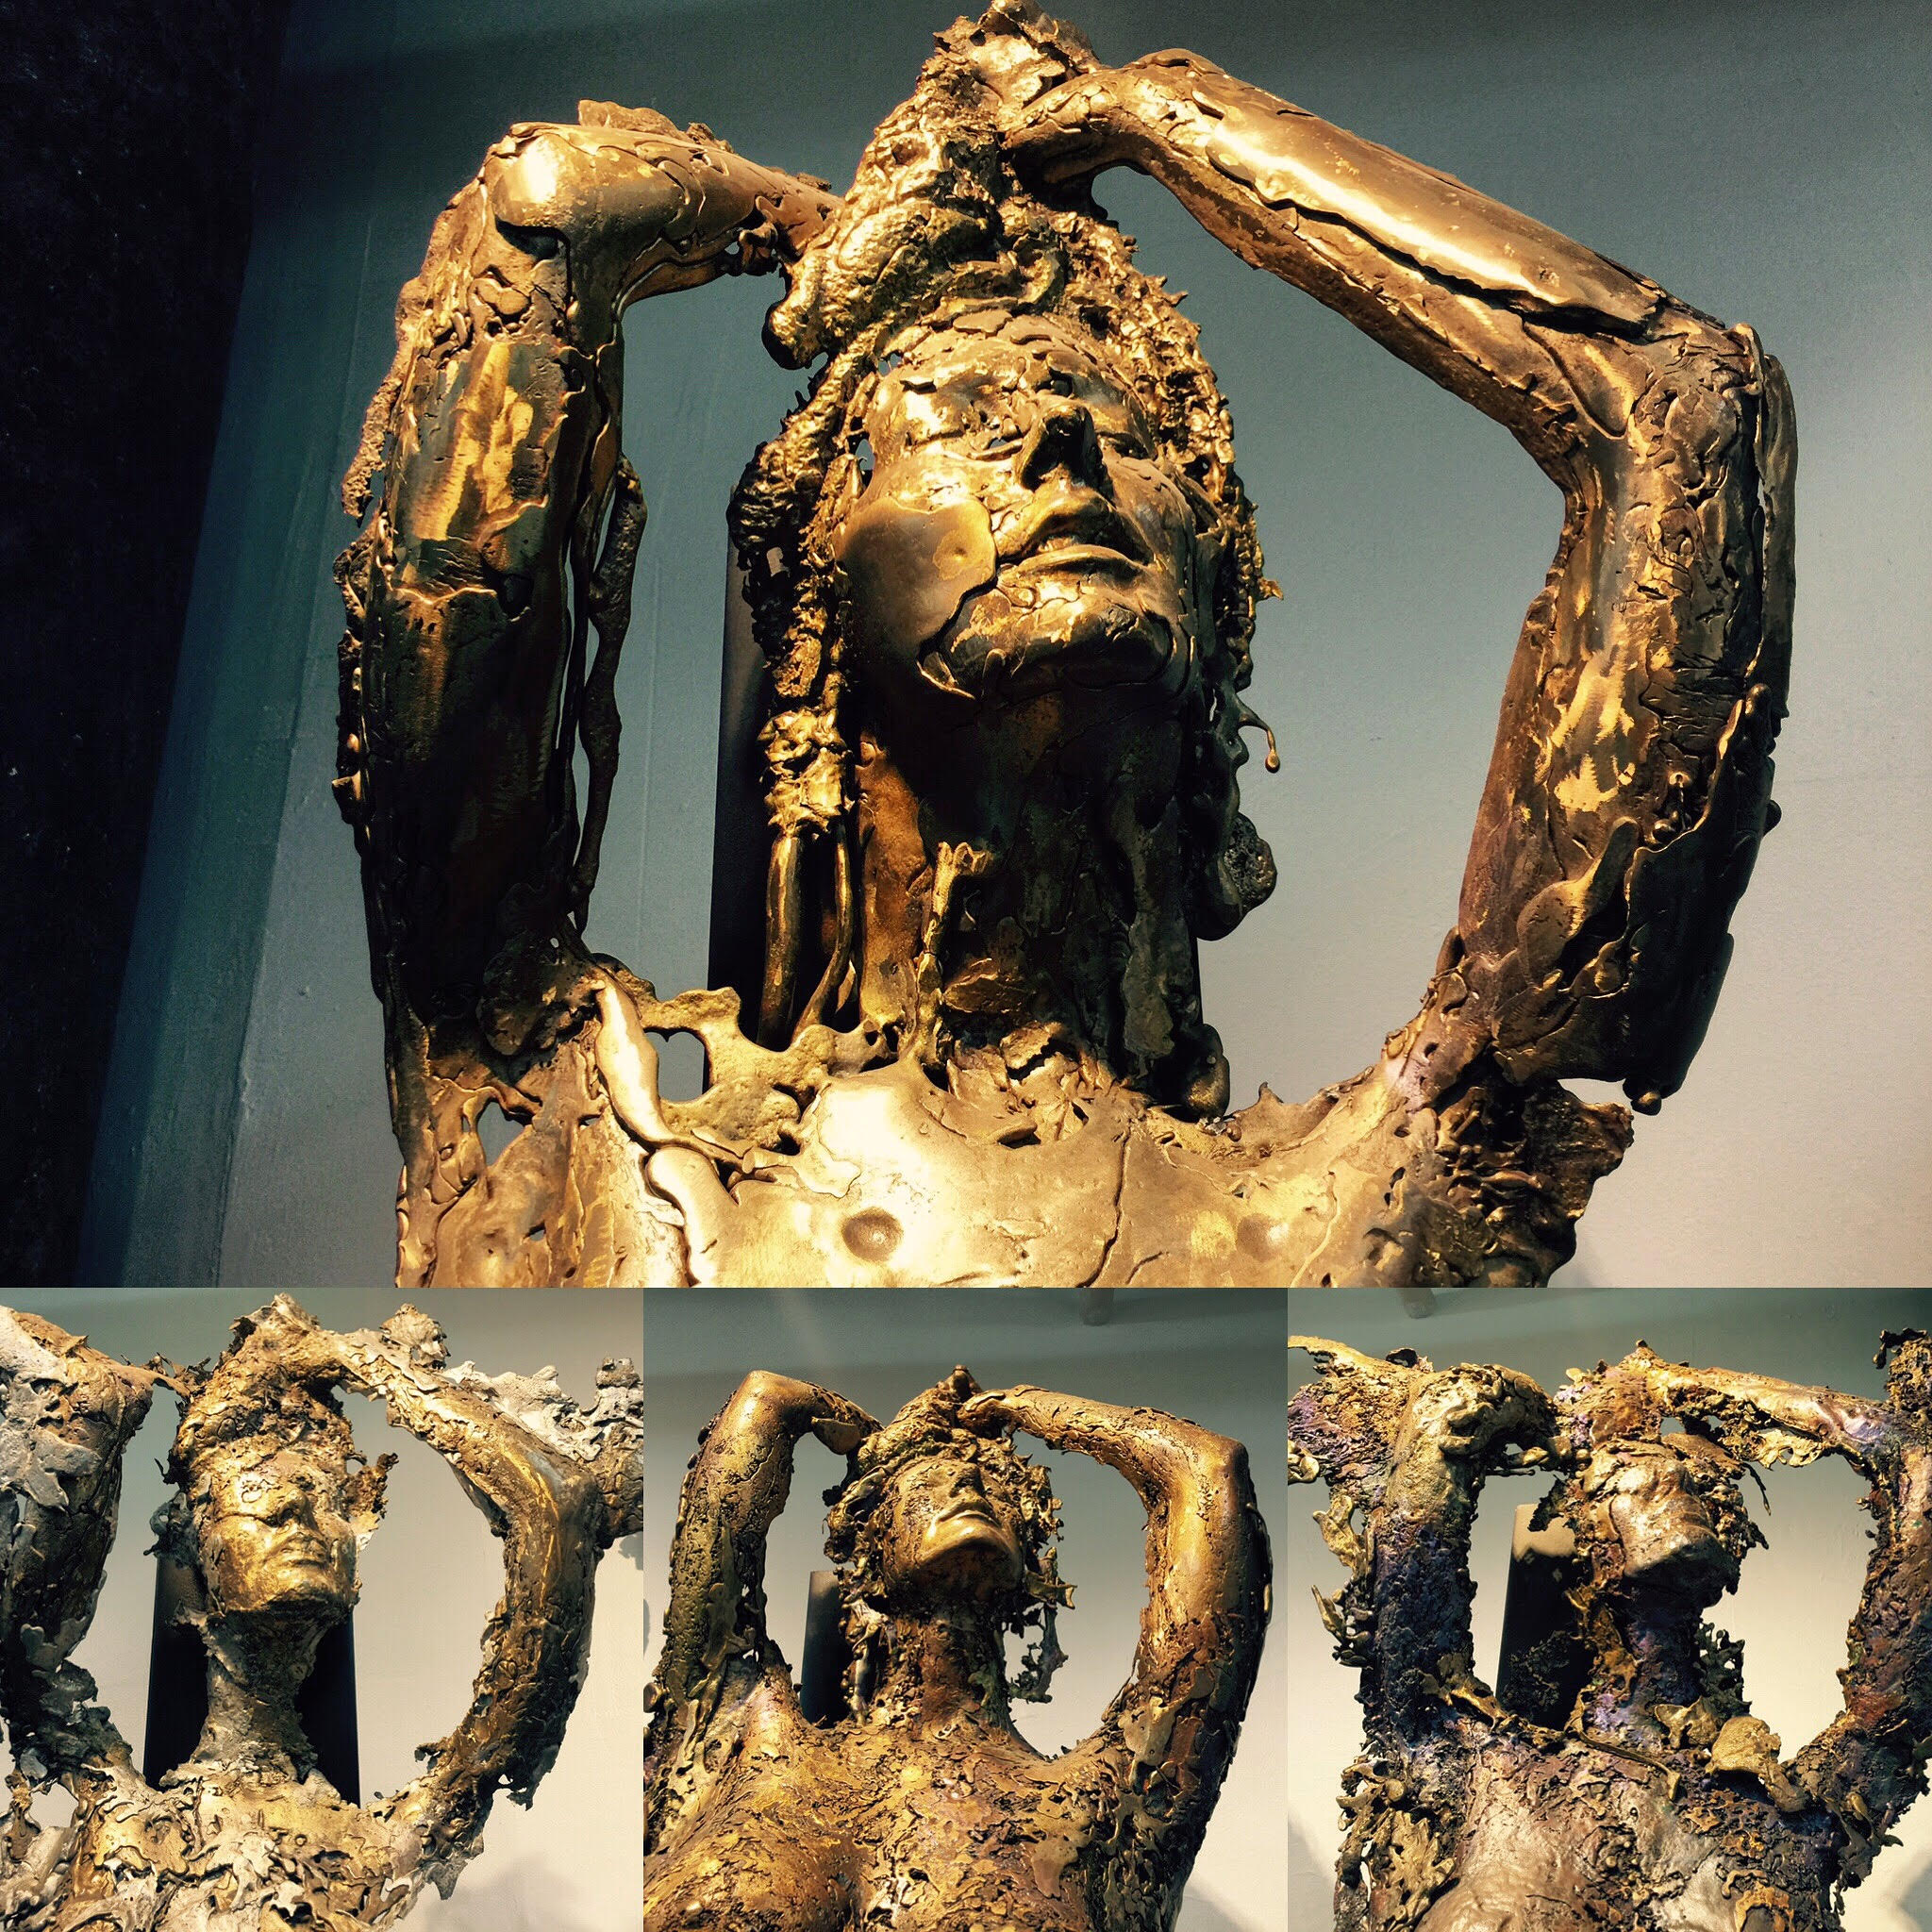 Asia,   1999. Bronze. 83 x 31 x 15 inches.